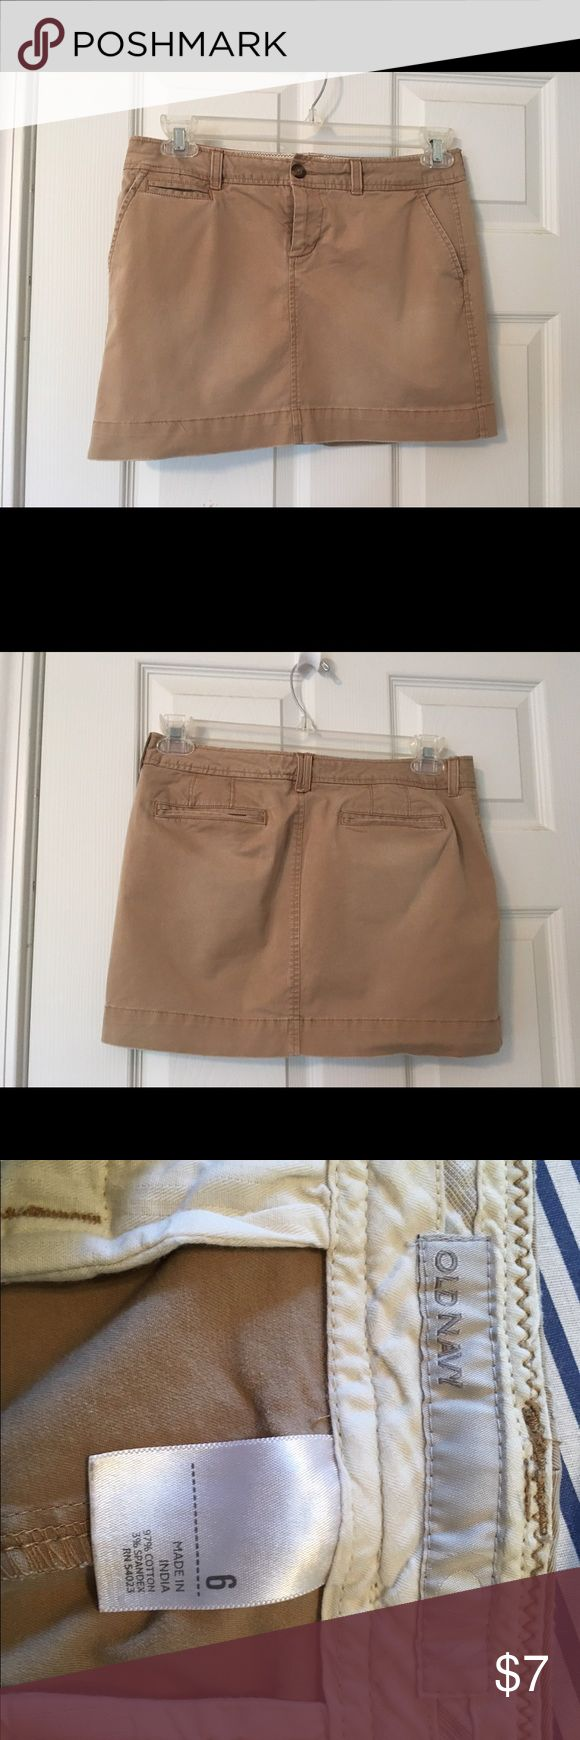 Old Navy Kaki Jean Mini Skirt with 5 pockets. Pockets, cute over Capri or long leggings. Old Navy Skirts Mini